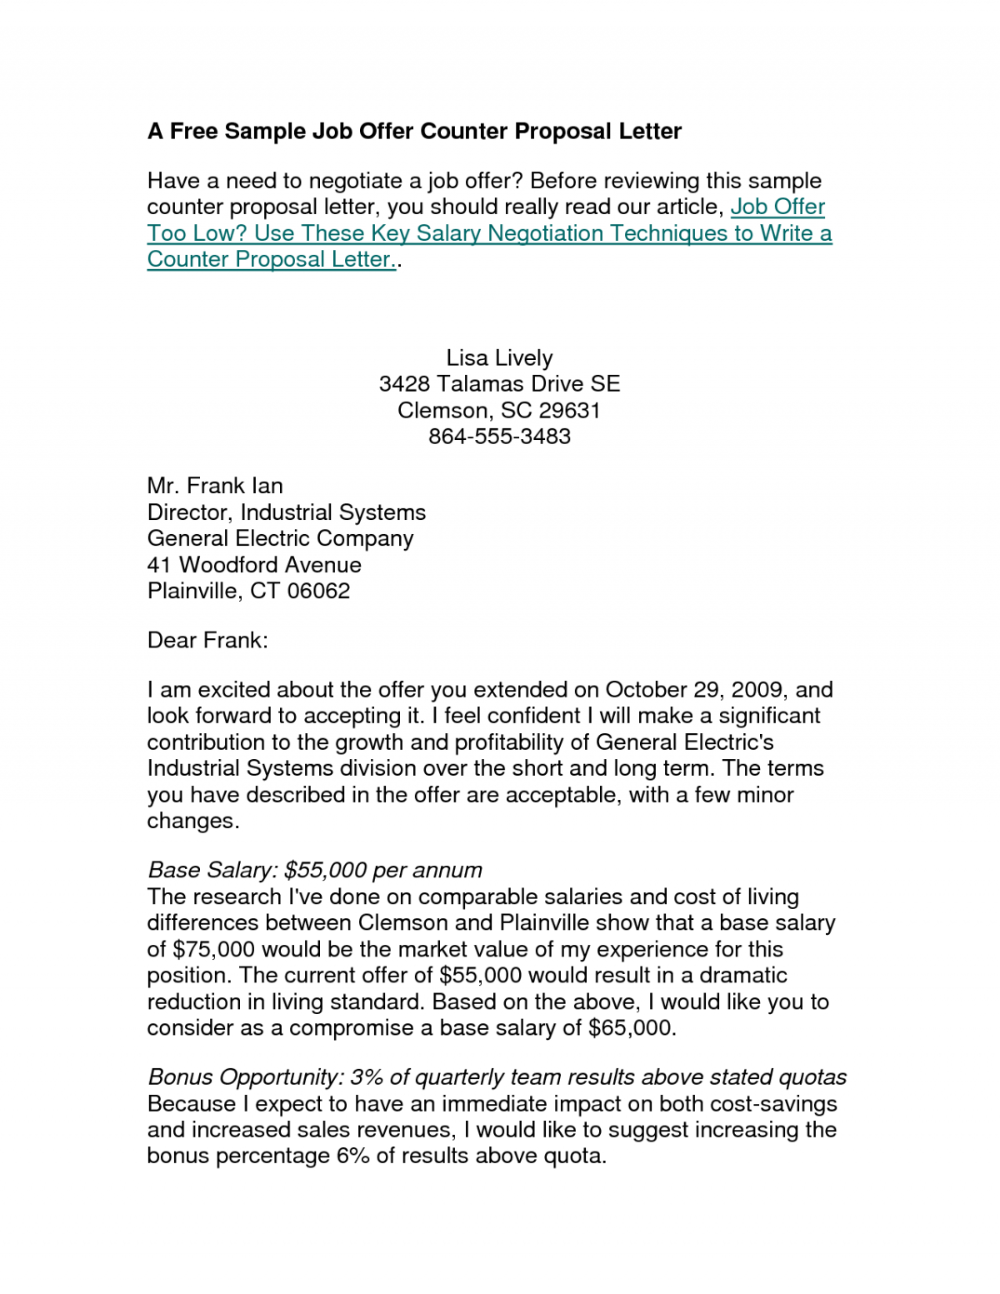 Salary Counter Offer Letter Examples from i.pinimg.com